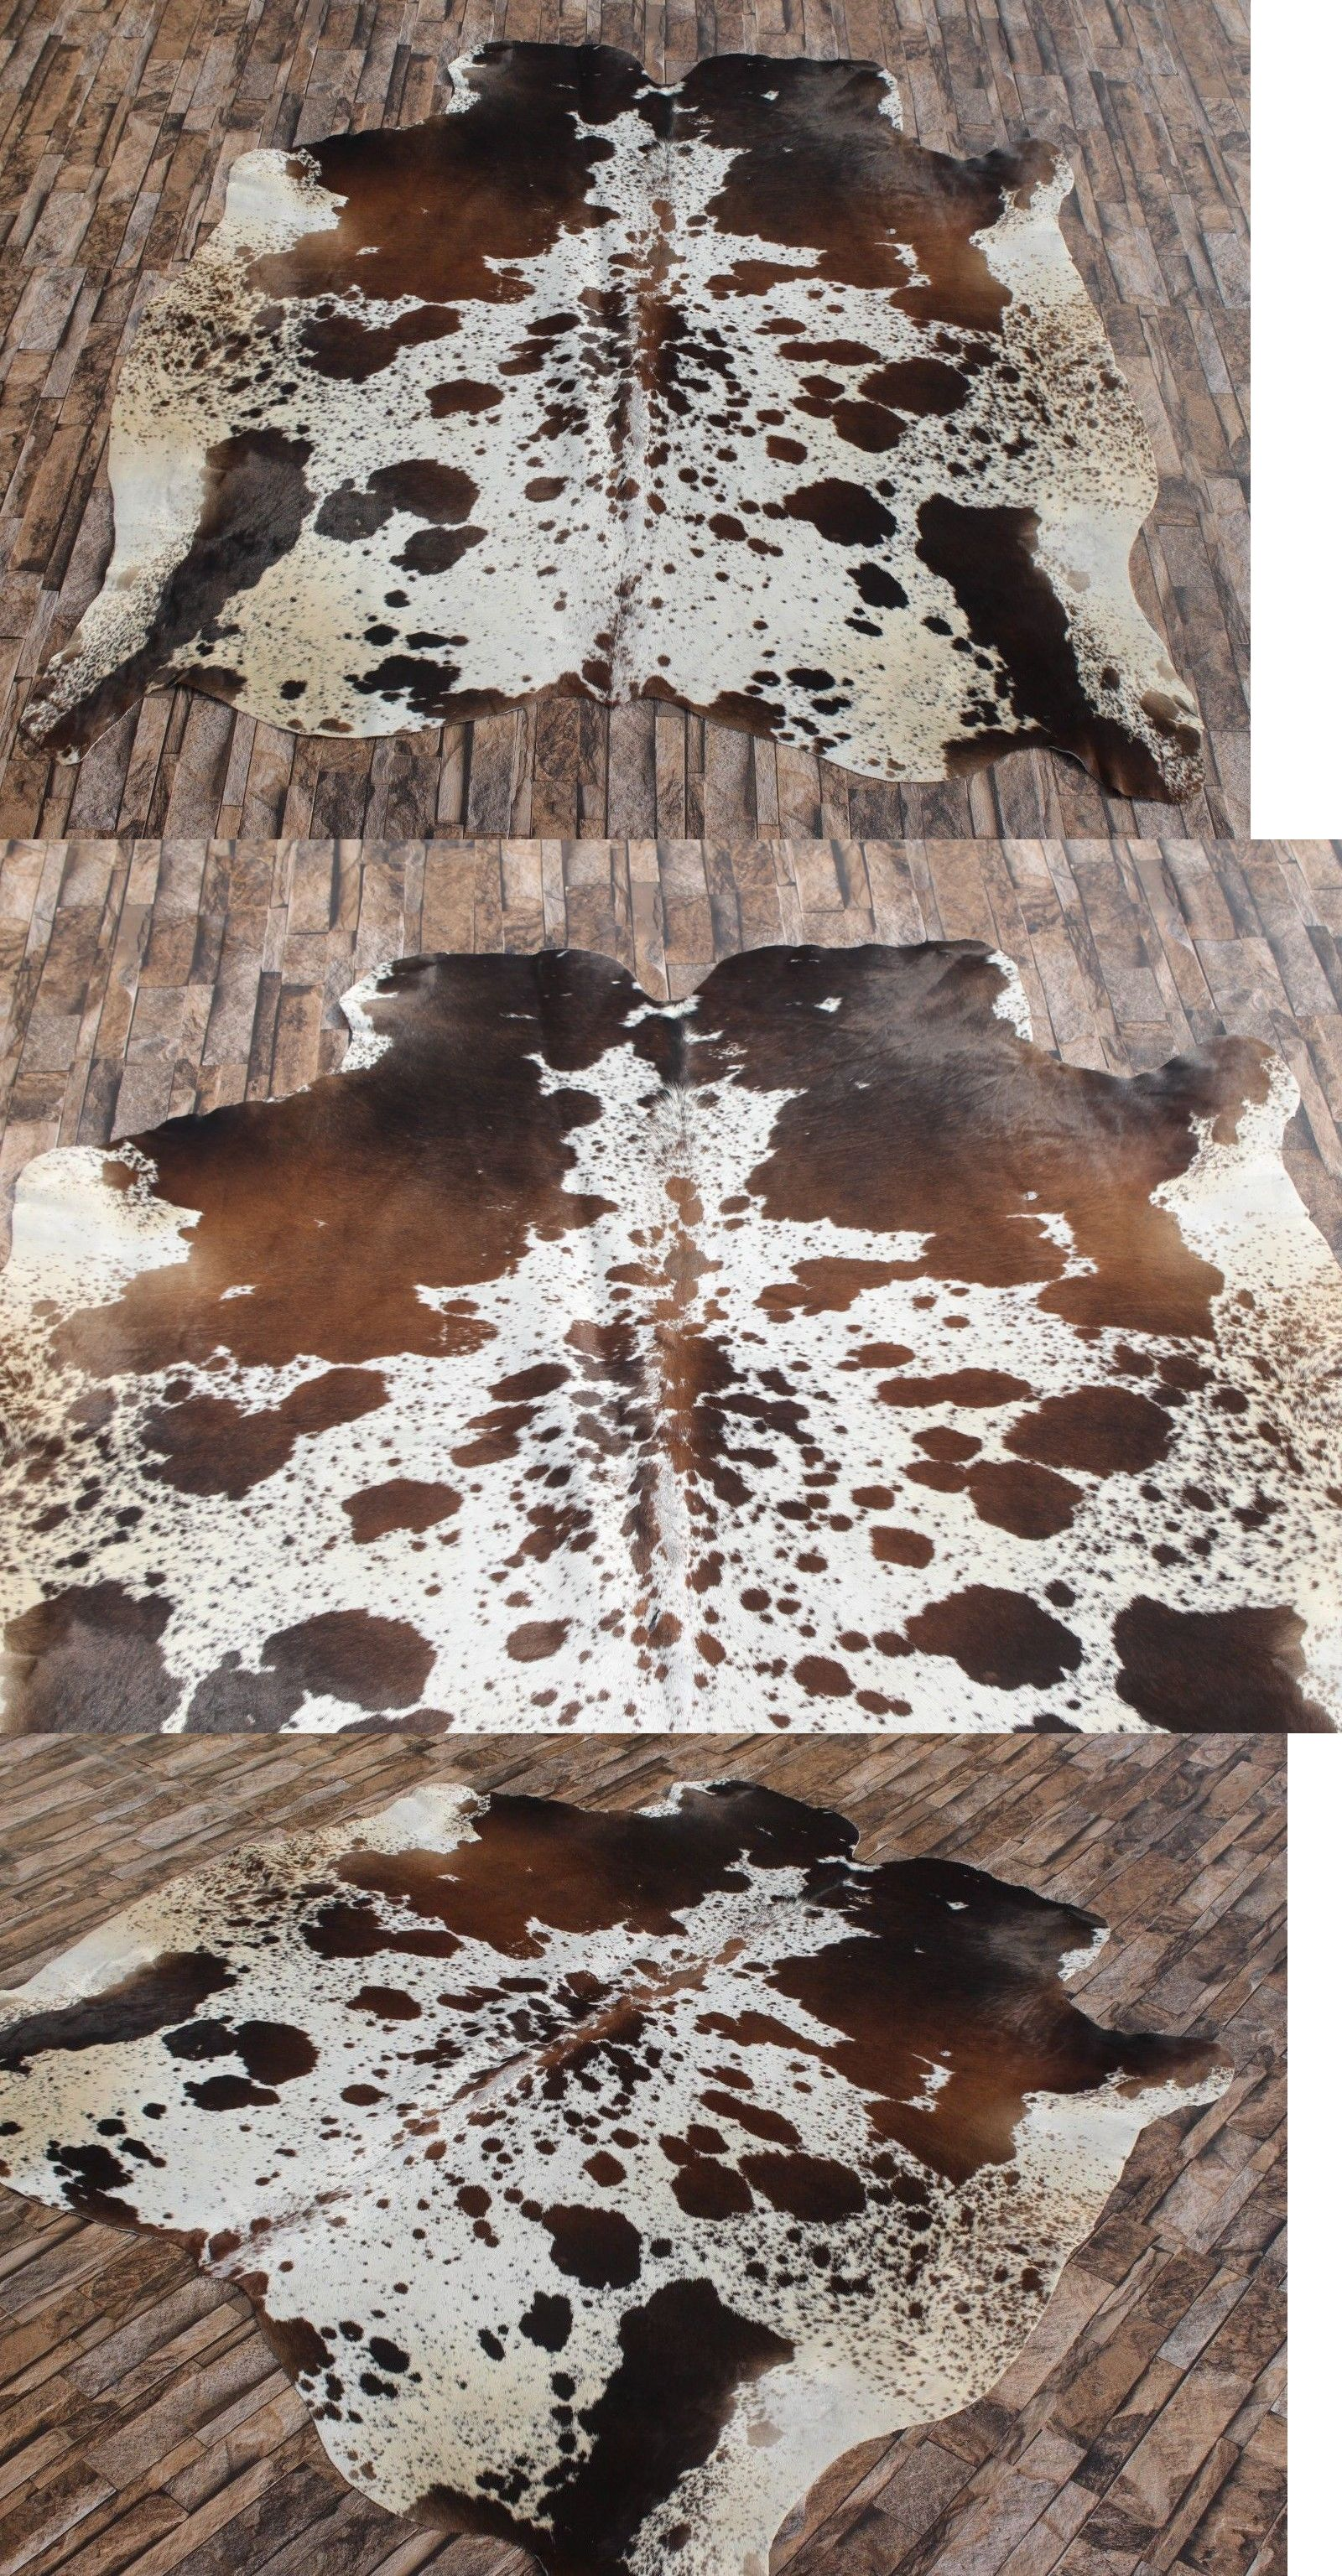 Leather Fur And Sheepskin Rugs 91421 Amazing Tricolor Cowhide Rug Tricolor Cow Hide Carpet 5 X 5 Buy It Now Tricolor Cowhide Rug Cow Hide Rug Sheepskin Rug